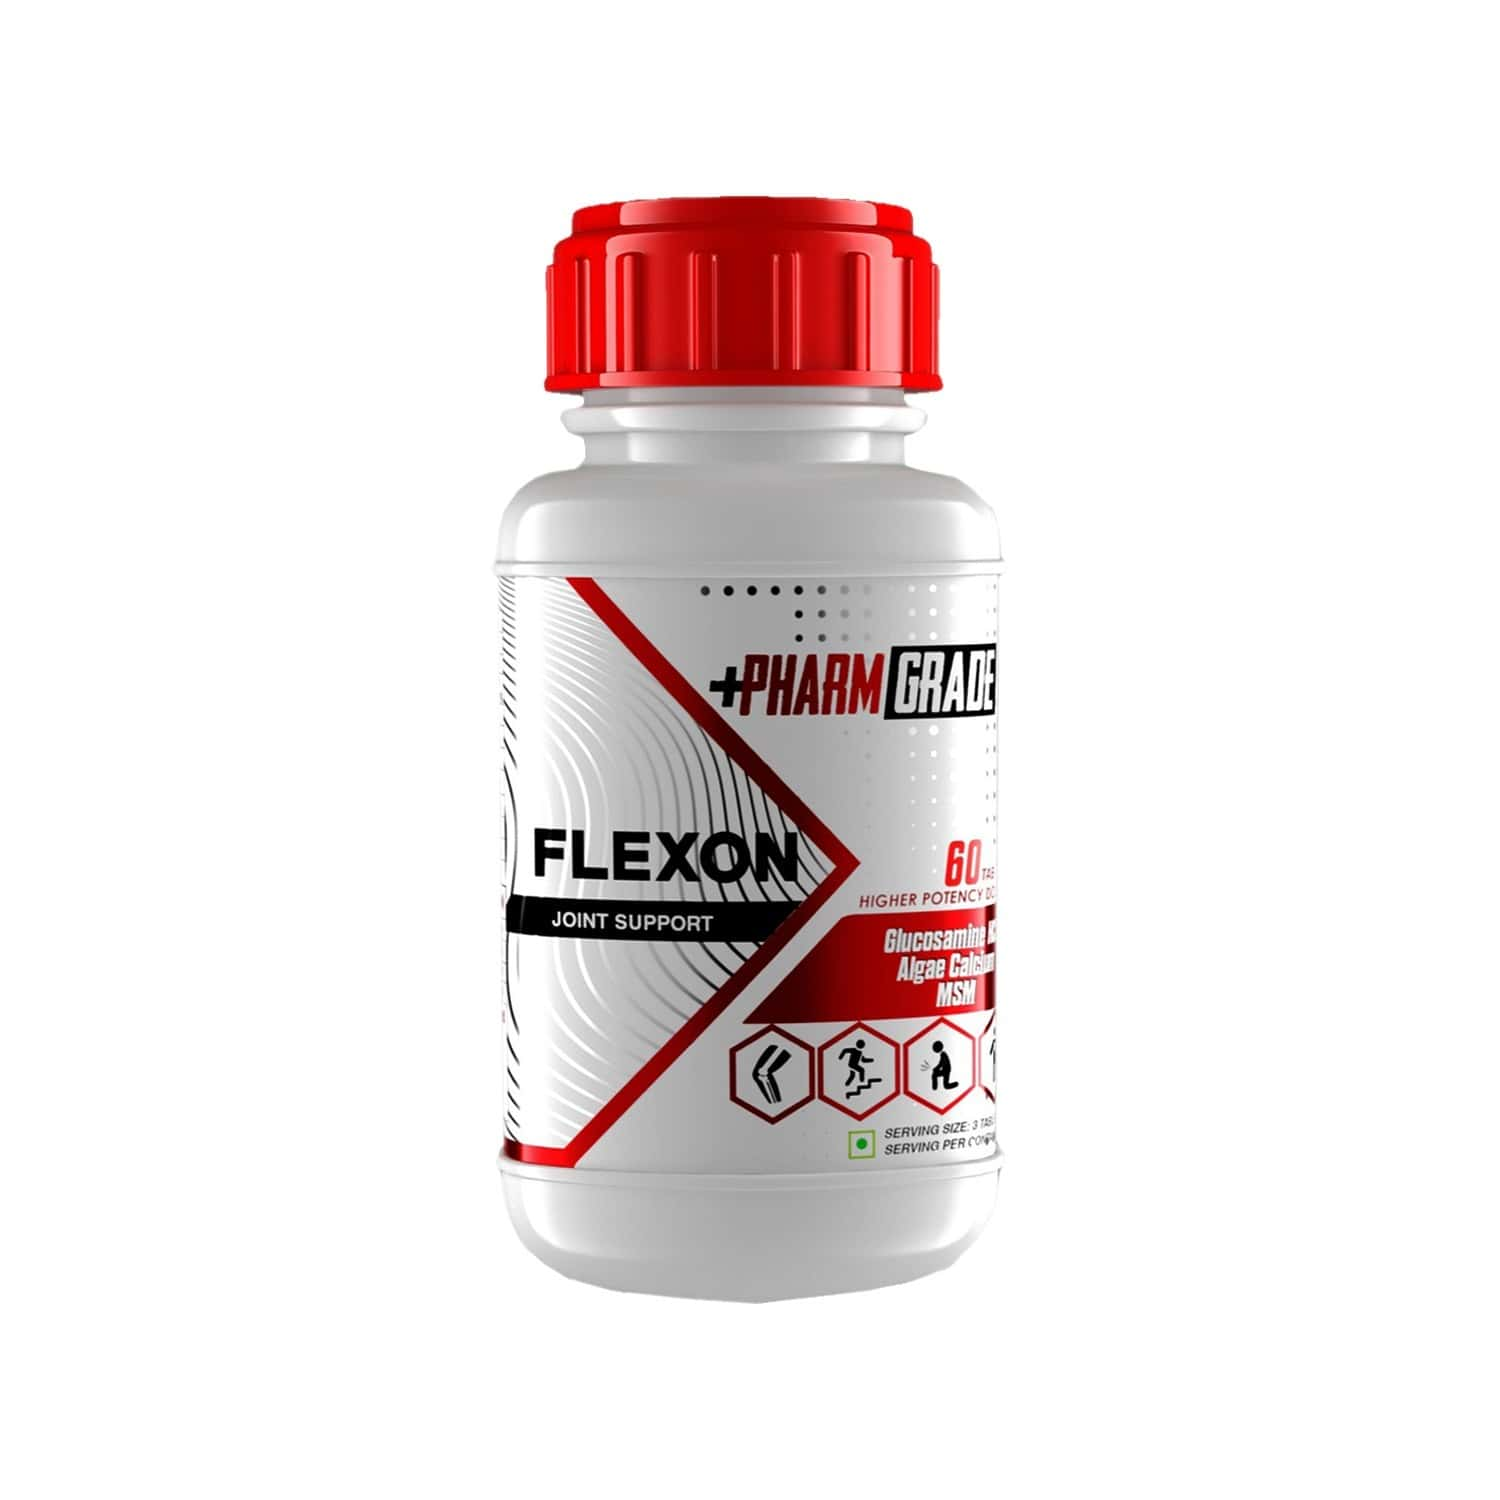 Pharmgrade Flexon Joint Support Supplement With Glucosamine Hcl, Sodium Hyaluronate, Algea Calcium - 60 Tablets